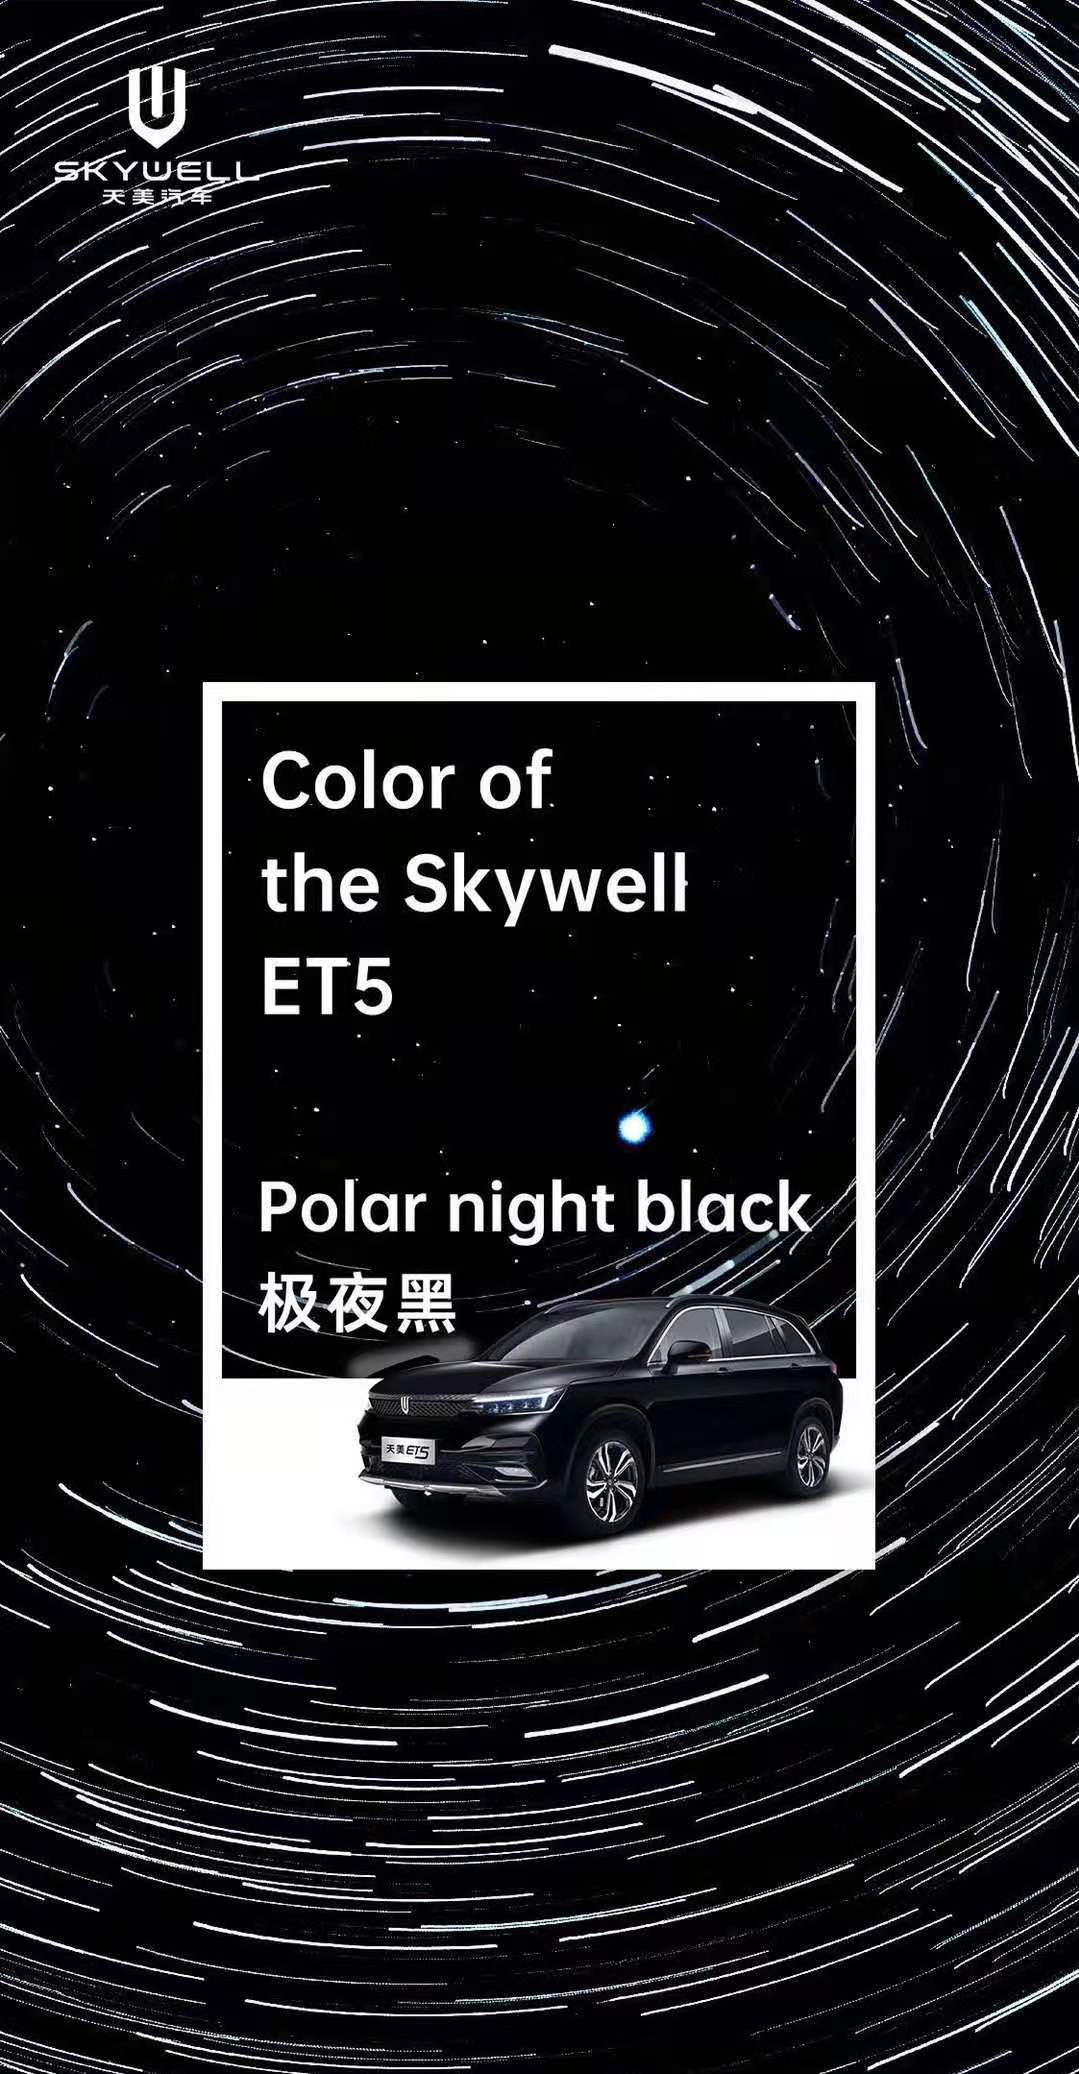 Polar night black ET5